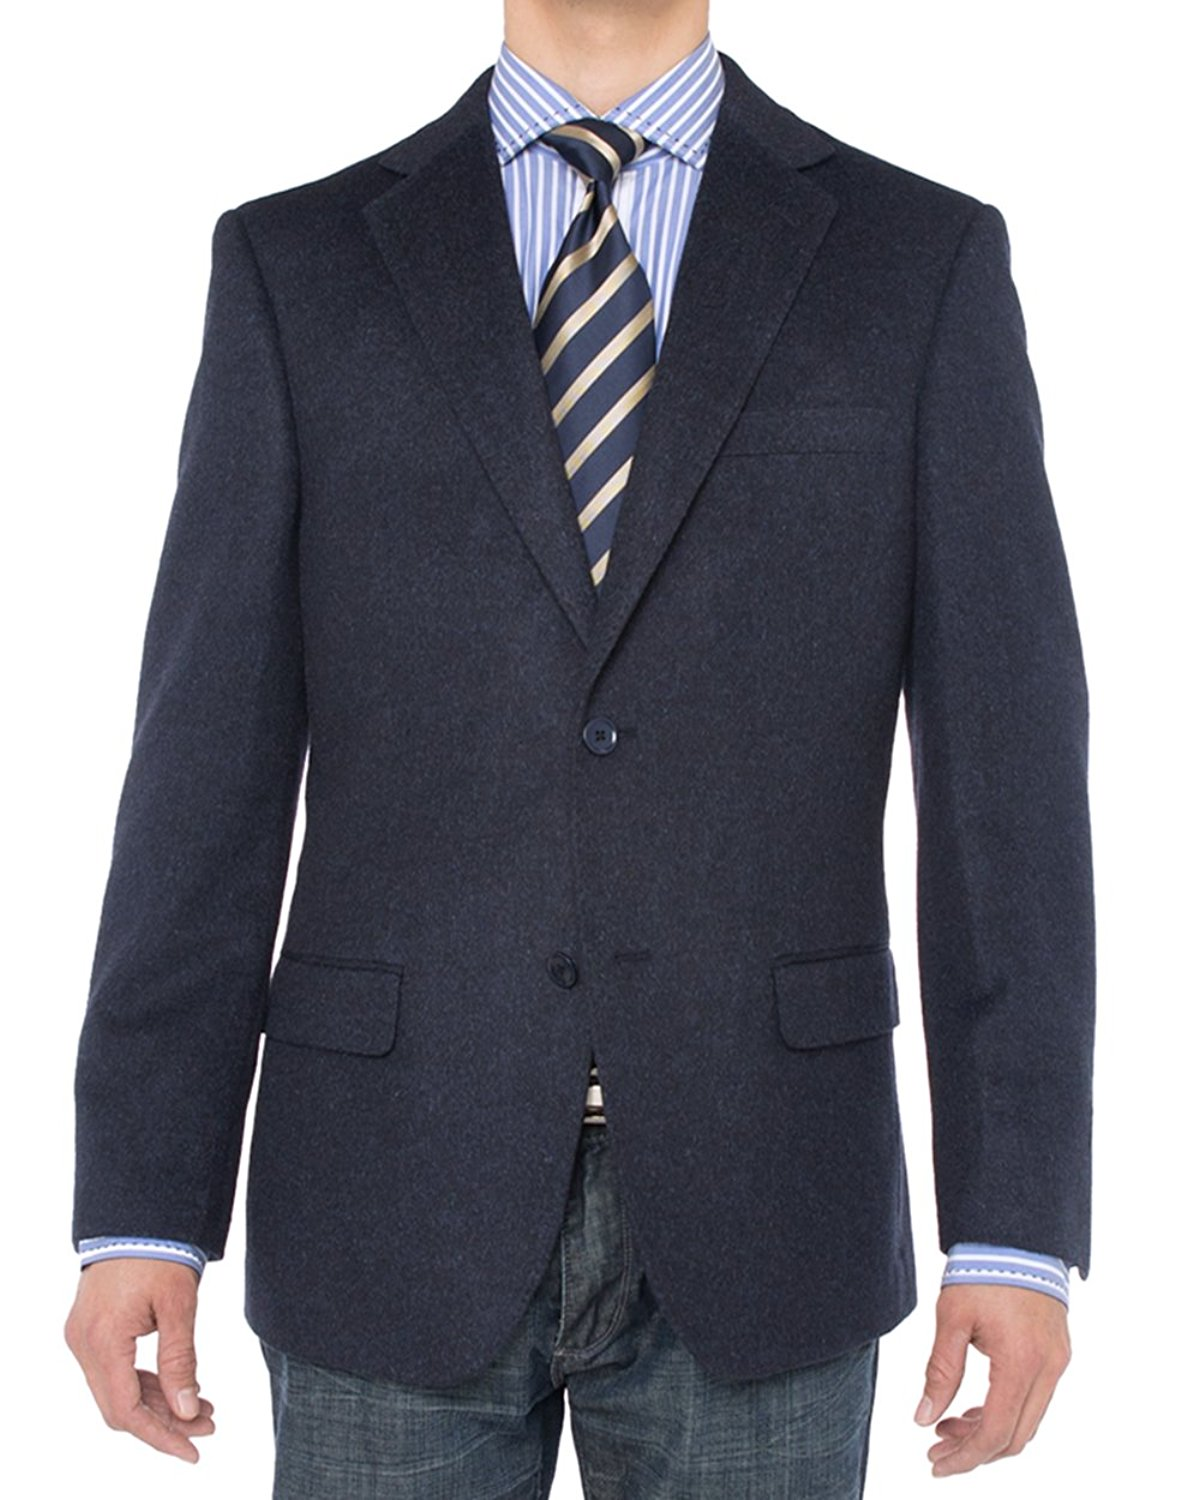 049dc005f57 Get Quotations · LN LUCIANO NATAZZI Luciano Natazzi Men s Camel Hair Blazer  Modern Fit Suit Jacket (42 Short